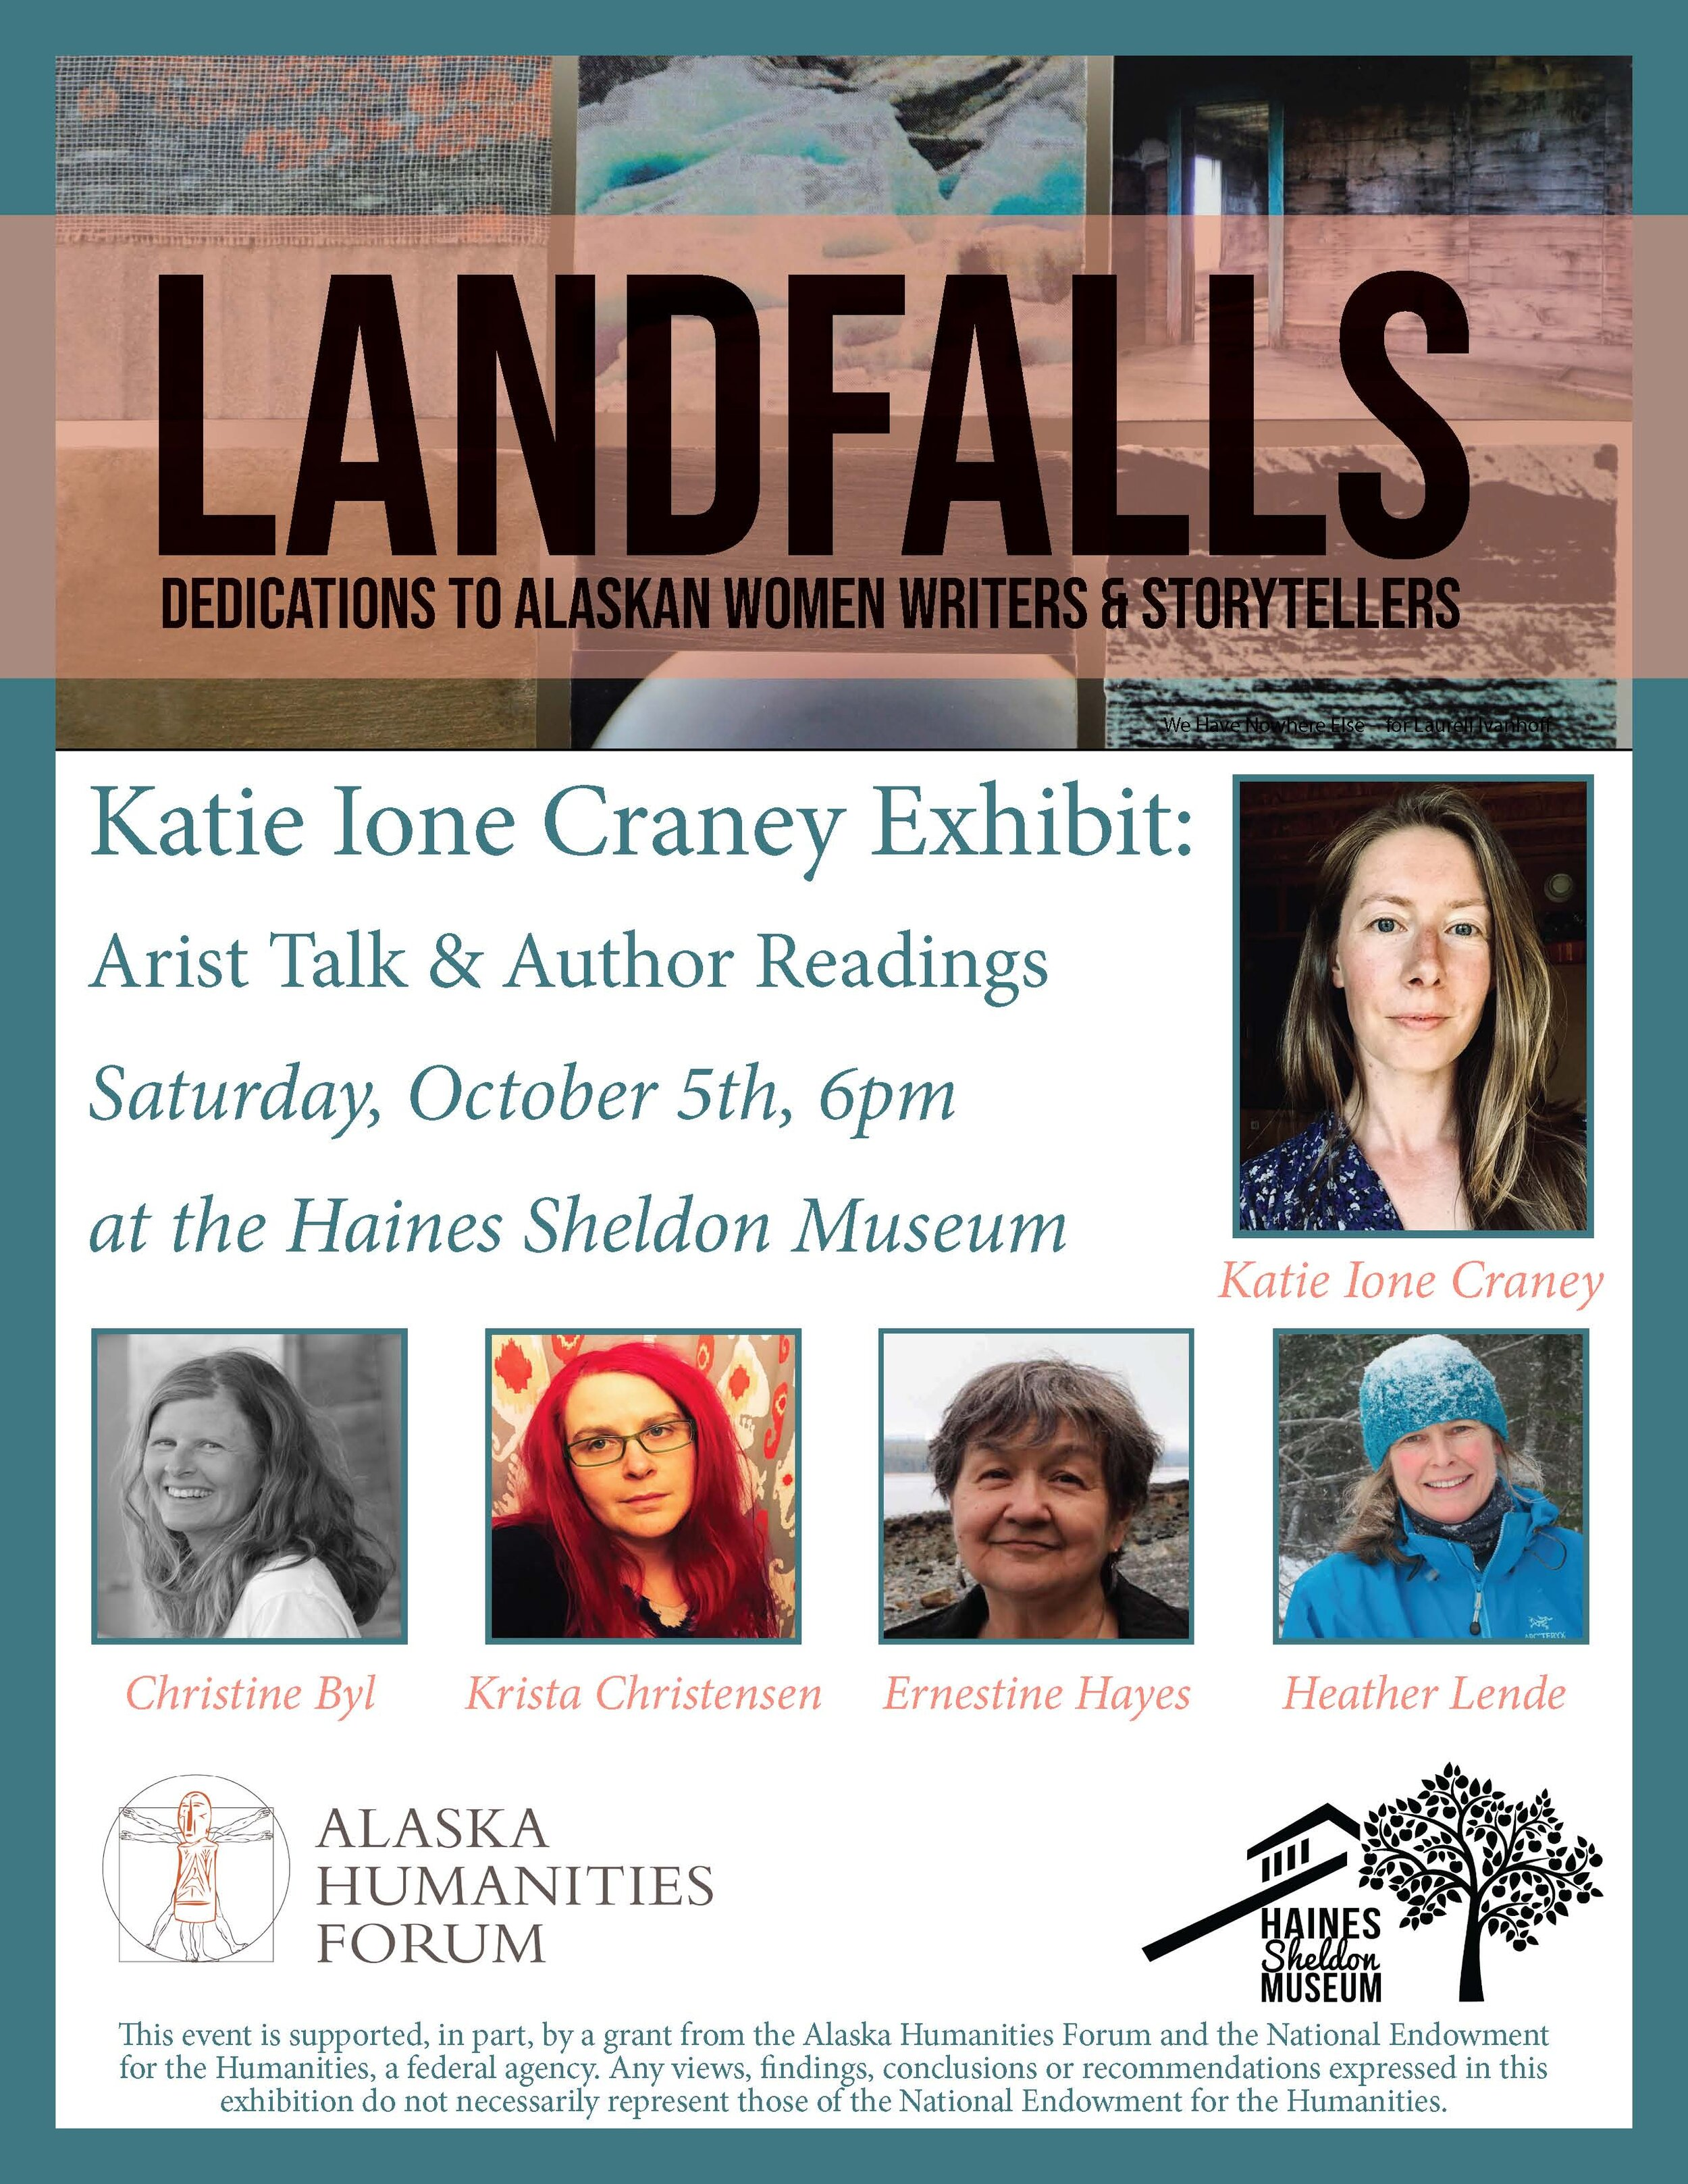 Join us at the  Haines Sheldon Museum  on Saturday, October 5th, for an artist talk and author readings with special guests  Christine Byl ,  Krista Christensen ,  Ernestine Saankalaxt' Hayes,  and  Heather Lende!